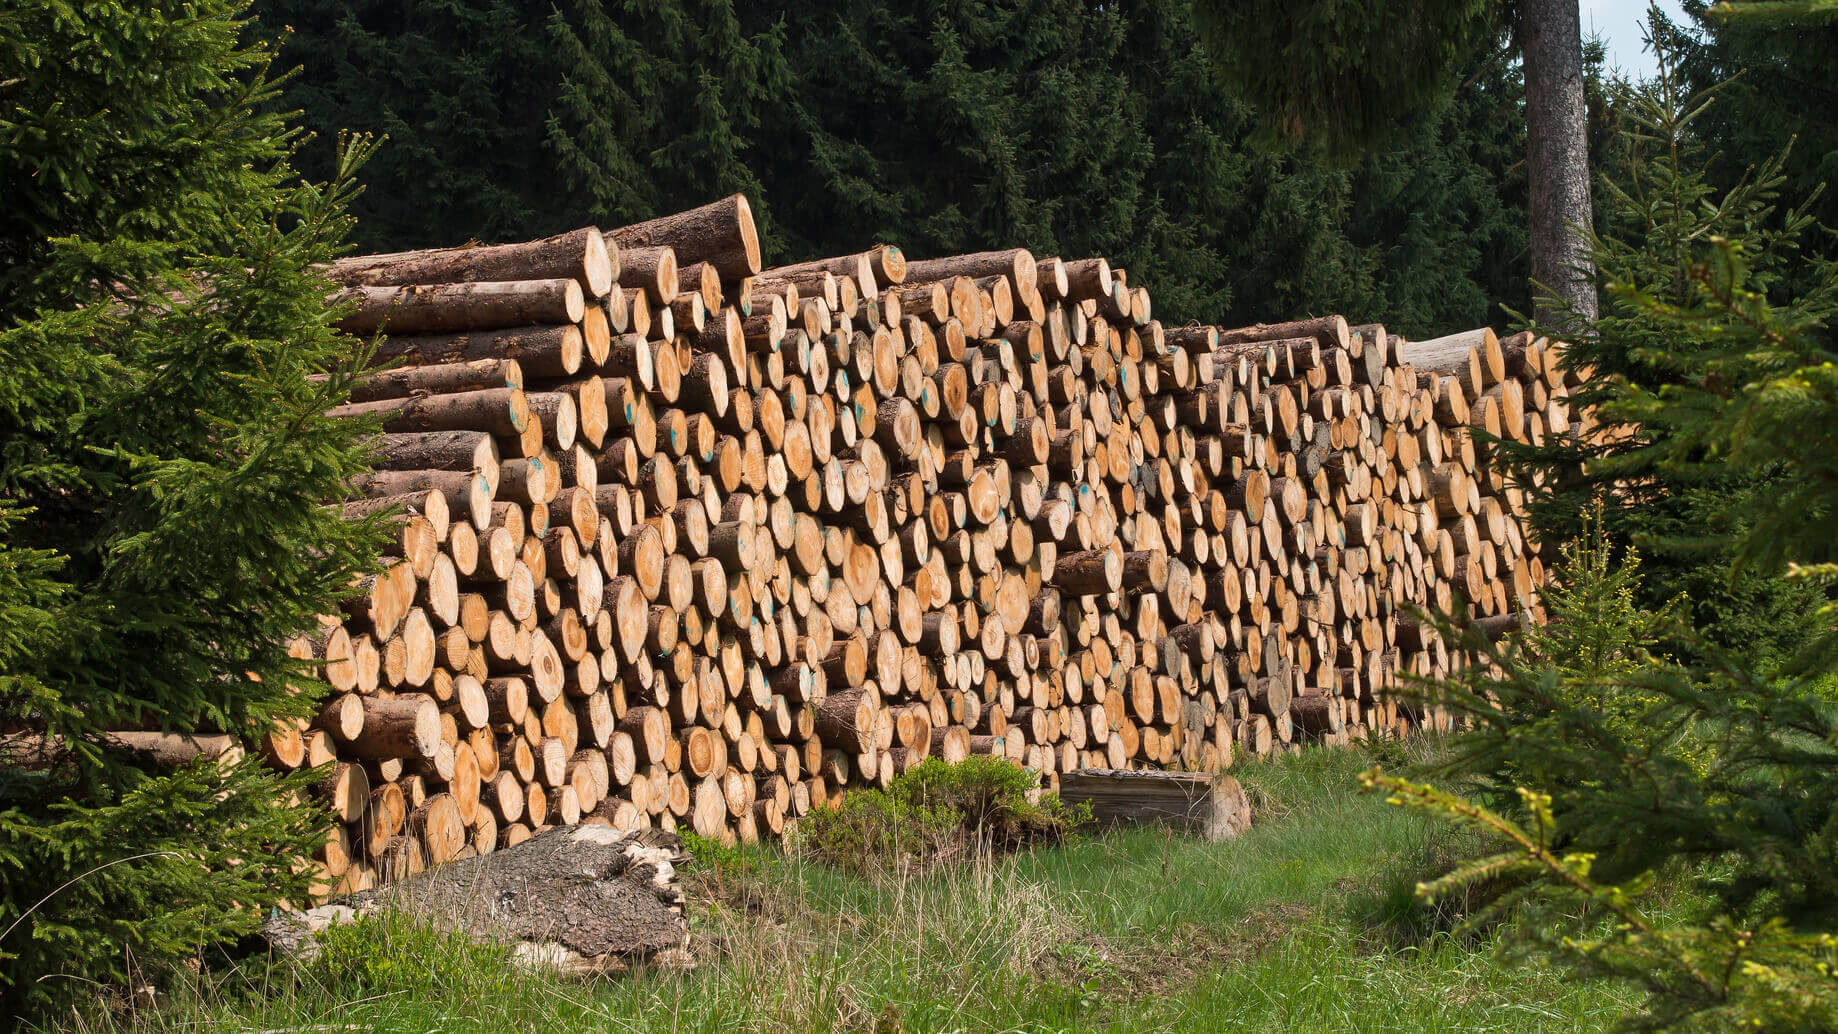 Holzstapel in der Natur